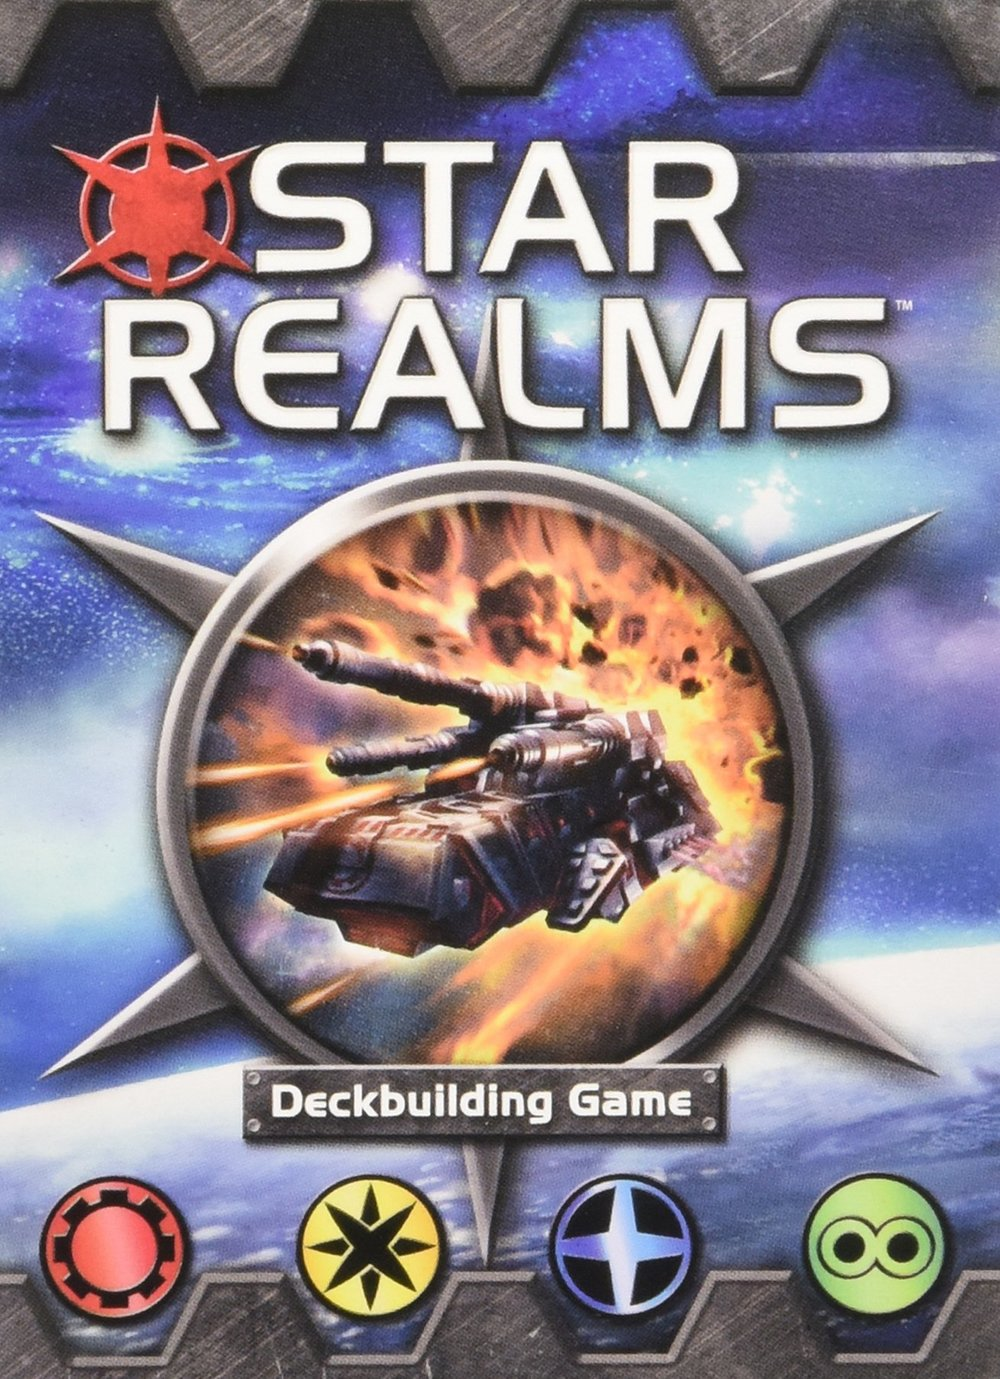 Star Realms - Star Realms is an amazing two-player deck builder that is fast paced and extremely easy to learn. Deck building games allow you to accumulate cards that you can replay throughout the game, typically structured in a way where better cards can be purchased/earned as time goes on.The first time I played this game, I couldn't get enough of it and I immediately wanted to buy it for myself. At such a low cost, this game is a must-have in everyone's collection.